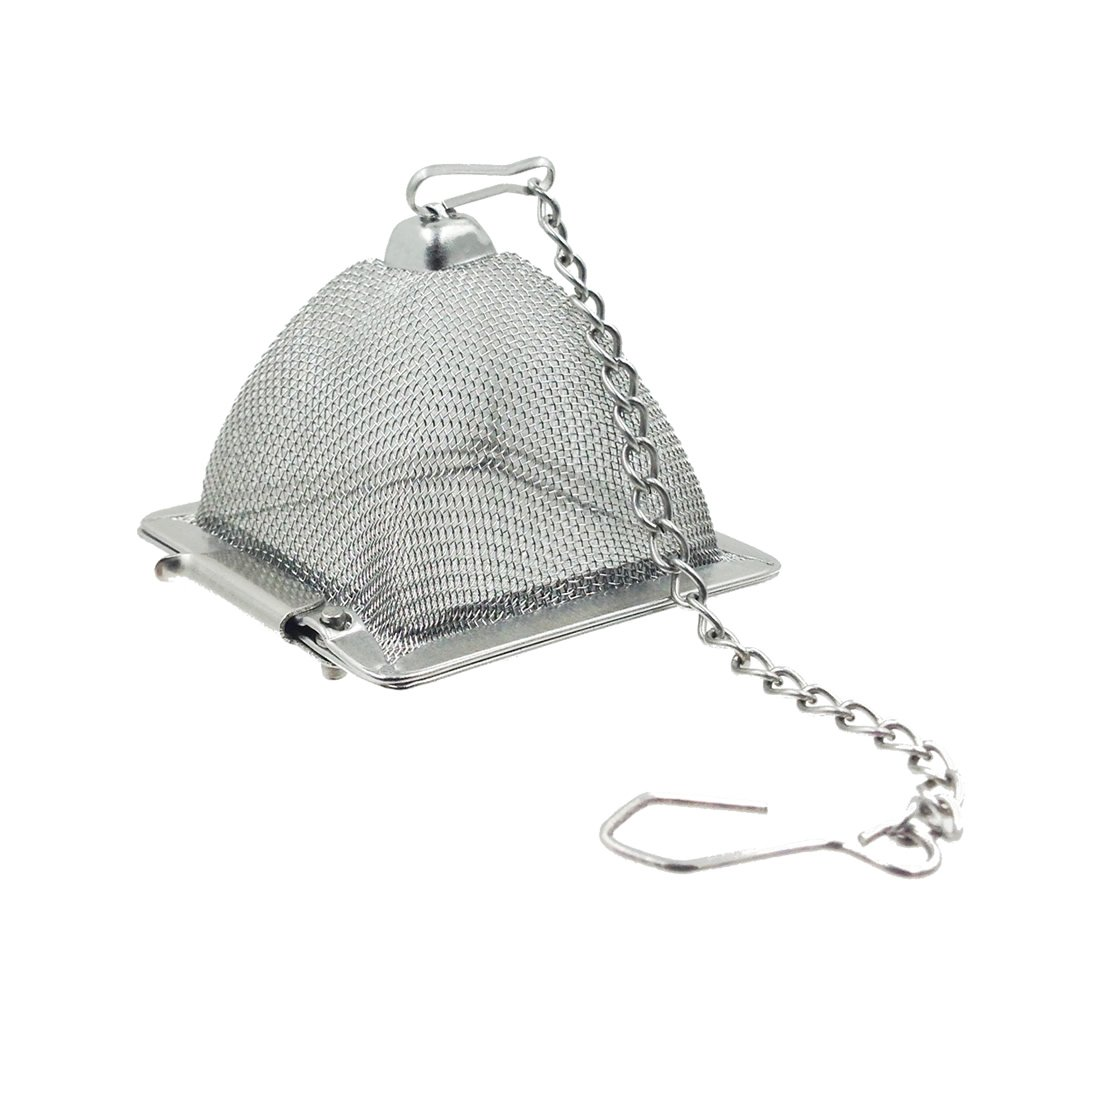 Makimy Pyramid Tea Infuser - NEW & IMPROVED - Best Tea Strainer for Loose Leaf & Herbal Tea - Stainless Steel Tea Filter - The Perfect Mesh Tea